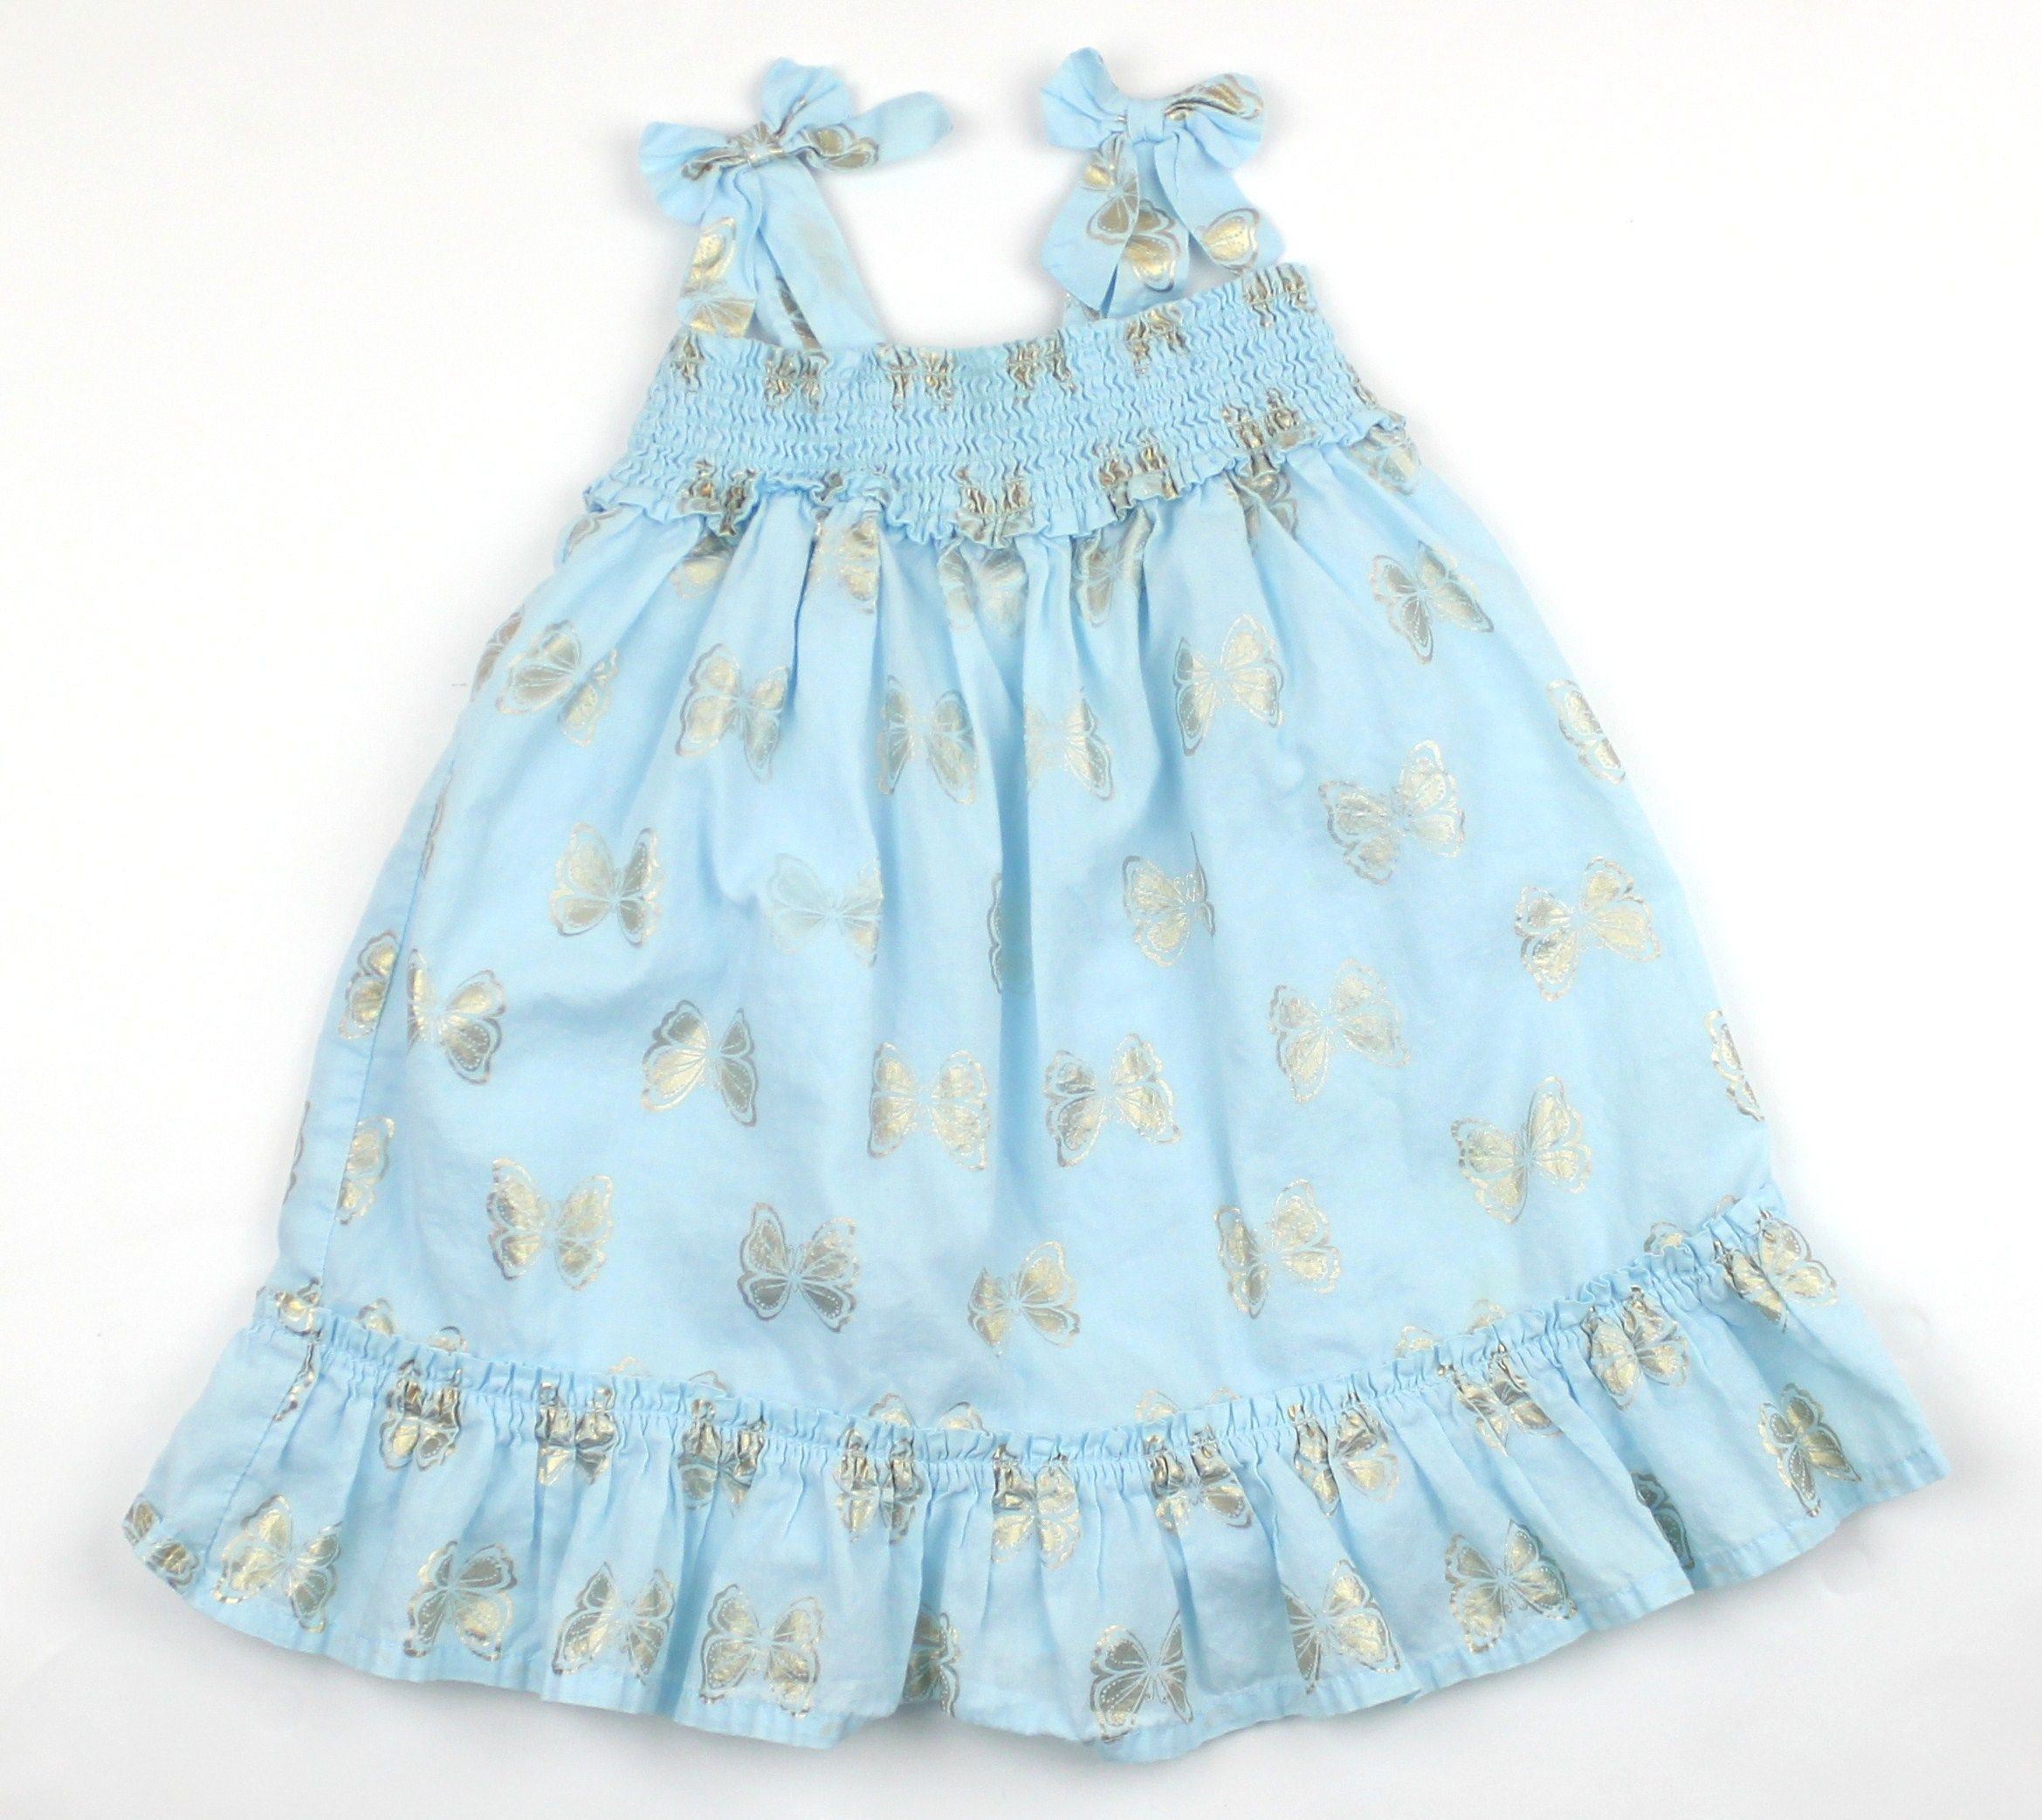 13812b9913cd Toddler Girl Light Blue Summer Dress with Gold Butterflies in Size 12-18  Months by Childrens Place and Only  5 Online at May Bug Treasures Resale